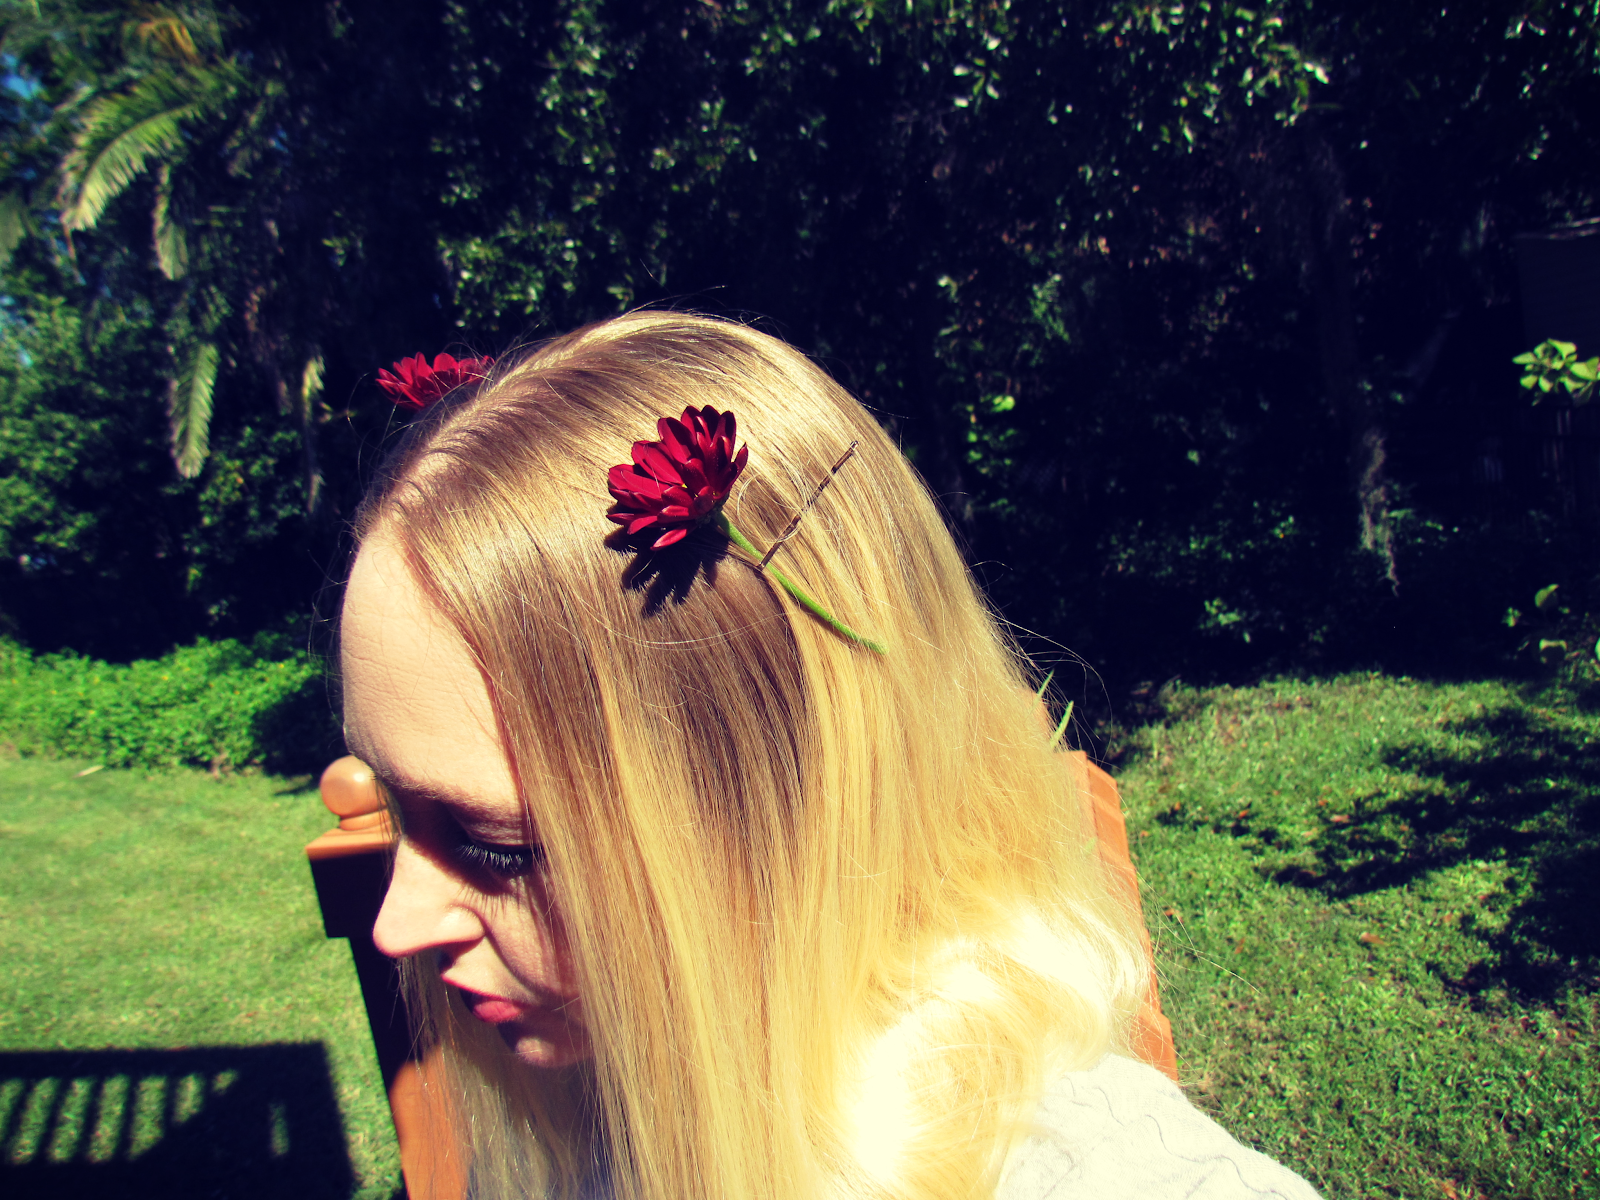 A woman wearing red living flower barrettes in her hair in a Florida landscape